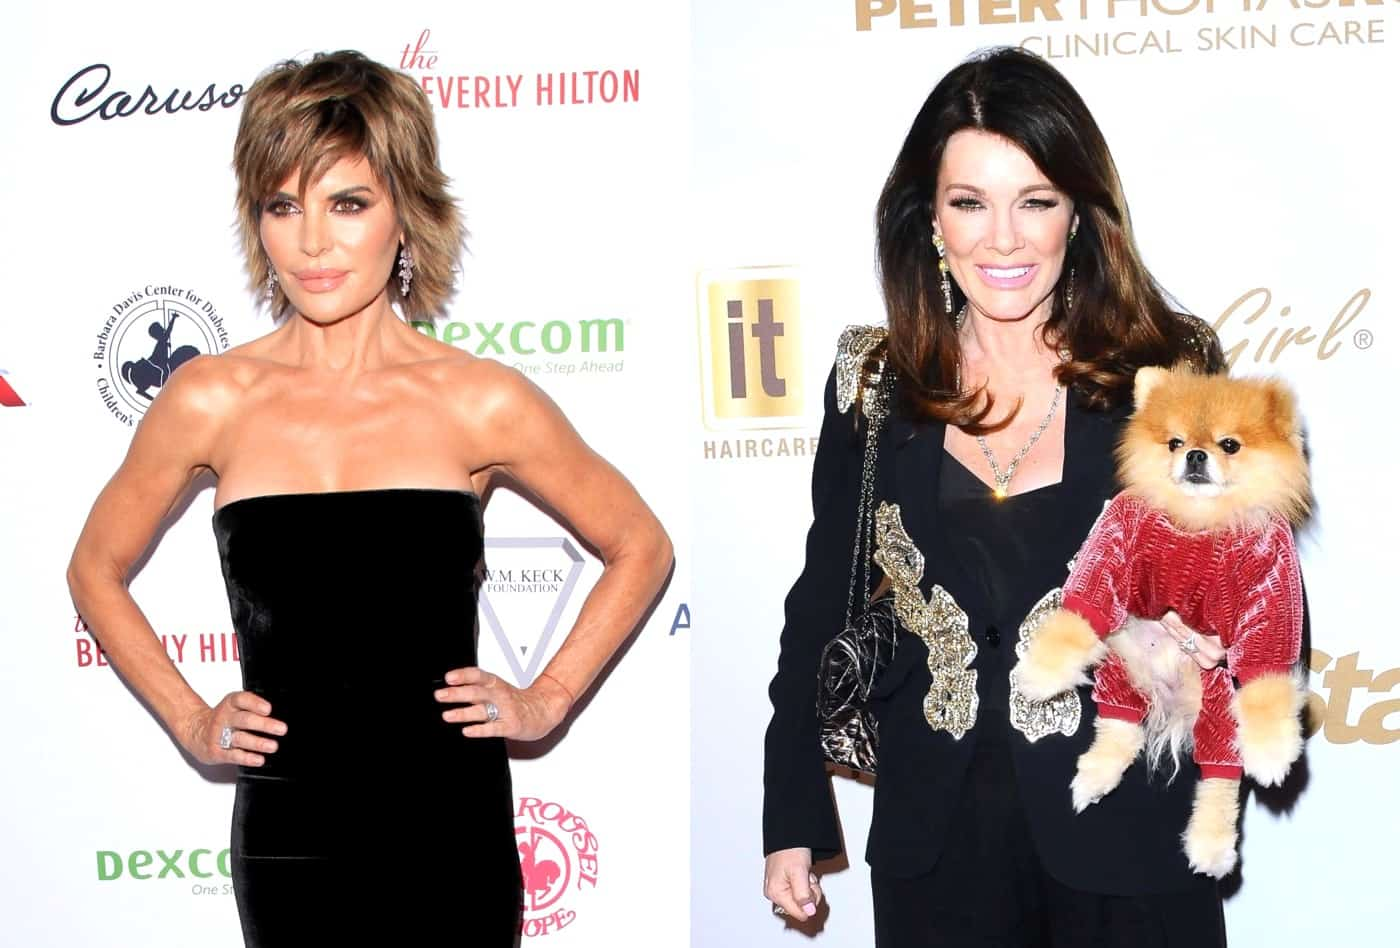 Lisa Rinna Calls Out Lisa Vanderpump for Not Attending RHOBH Events